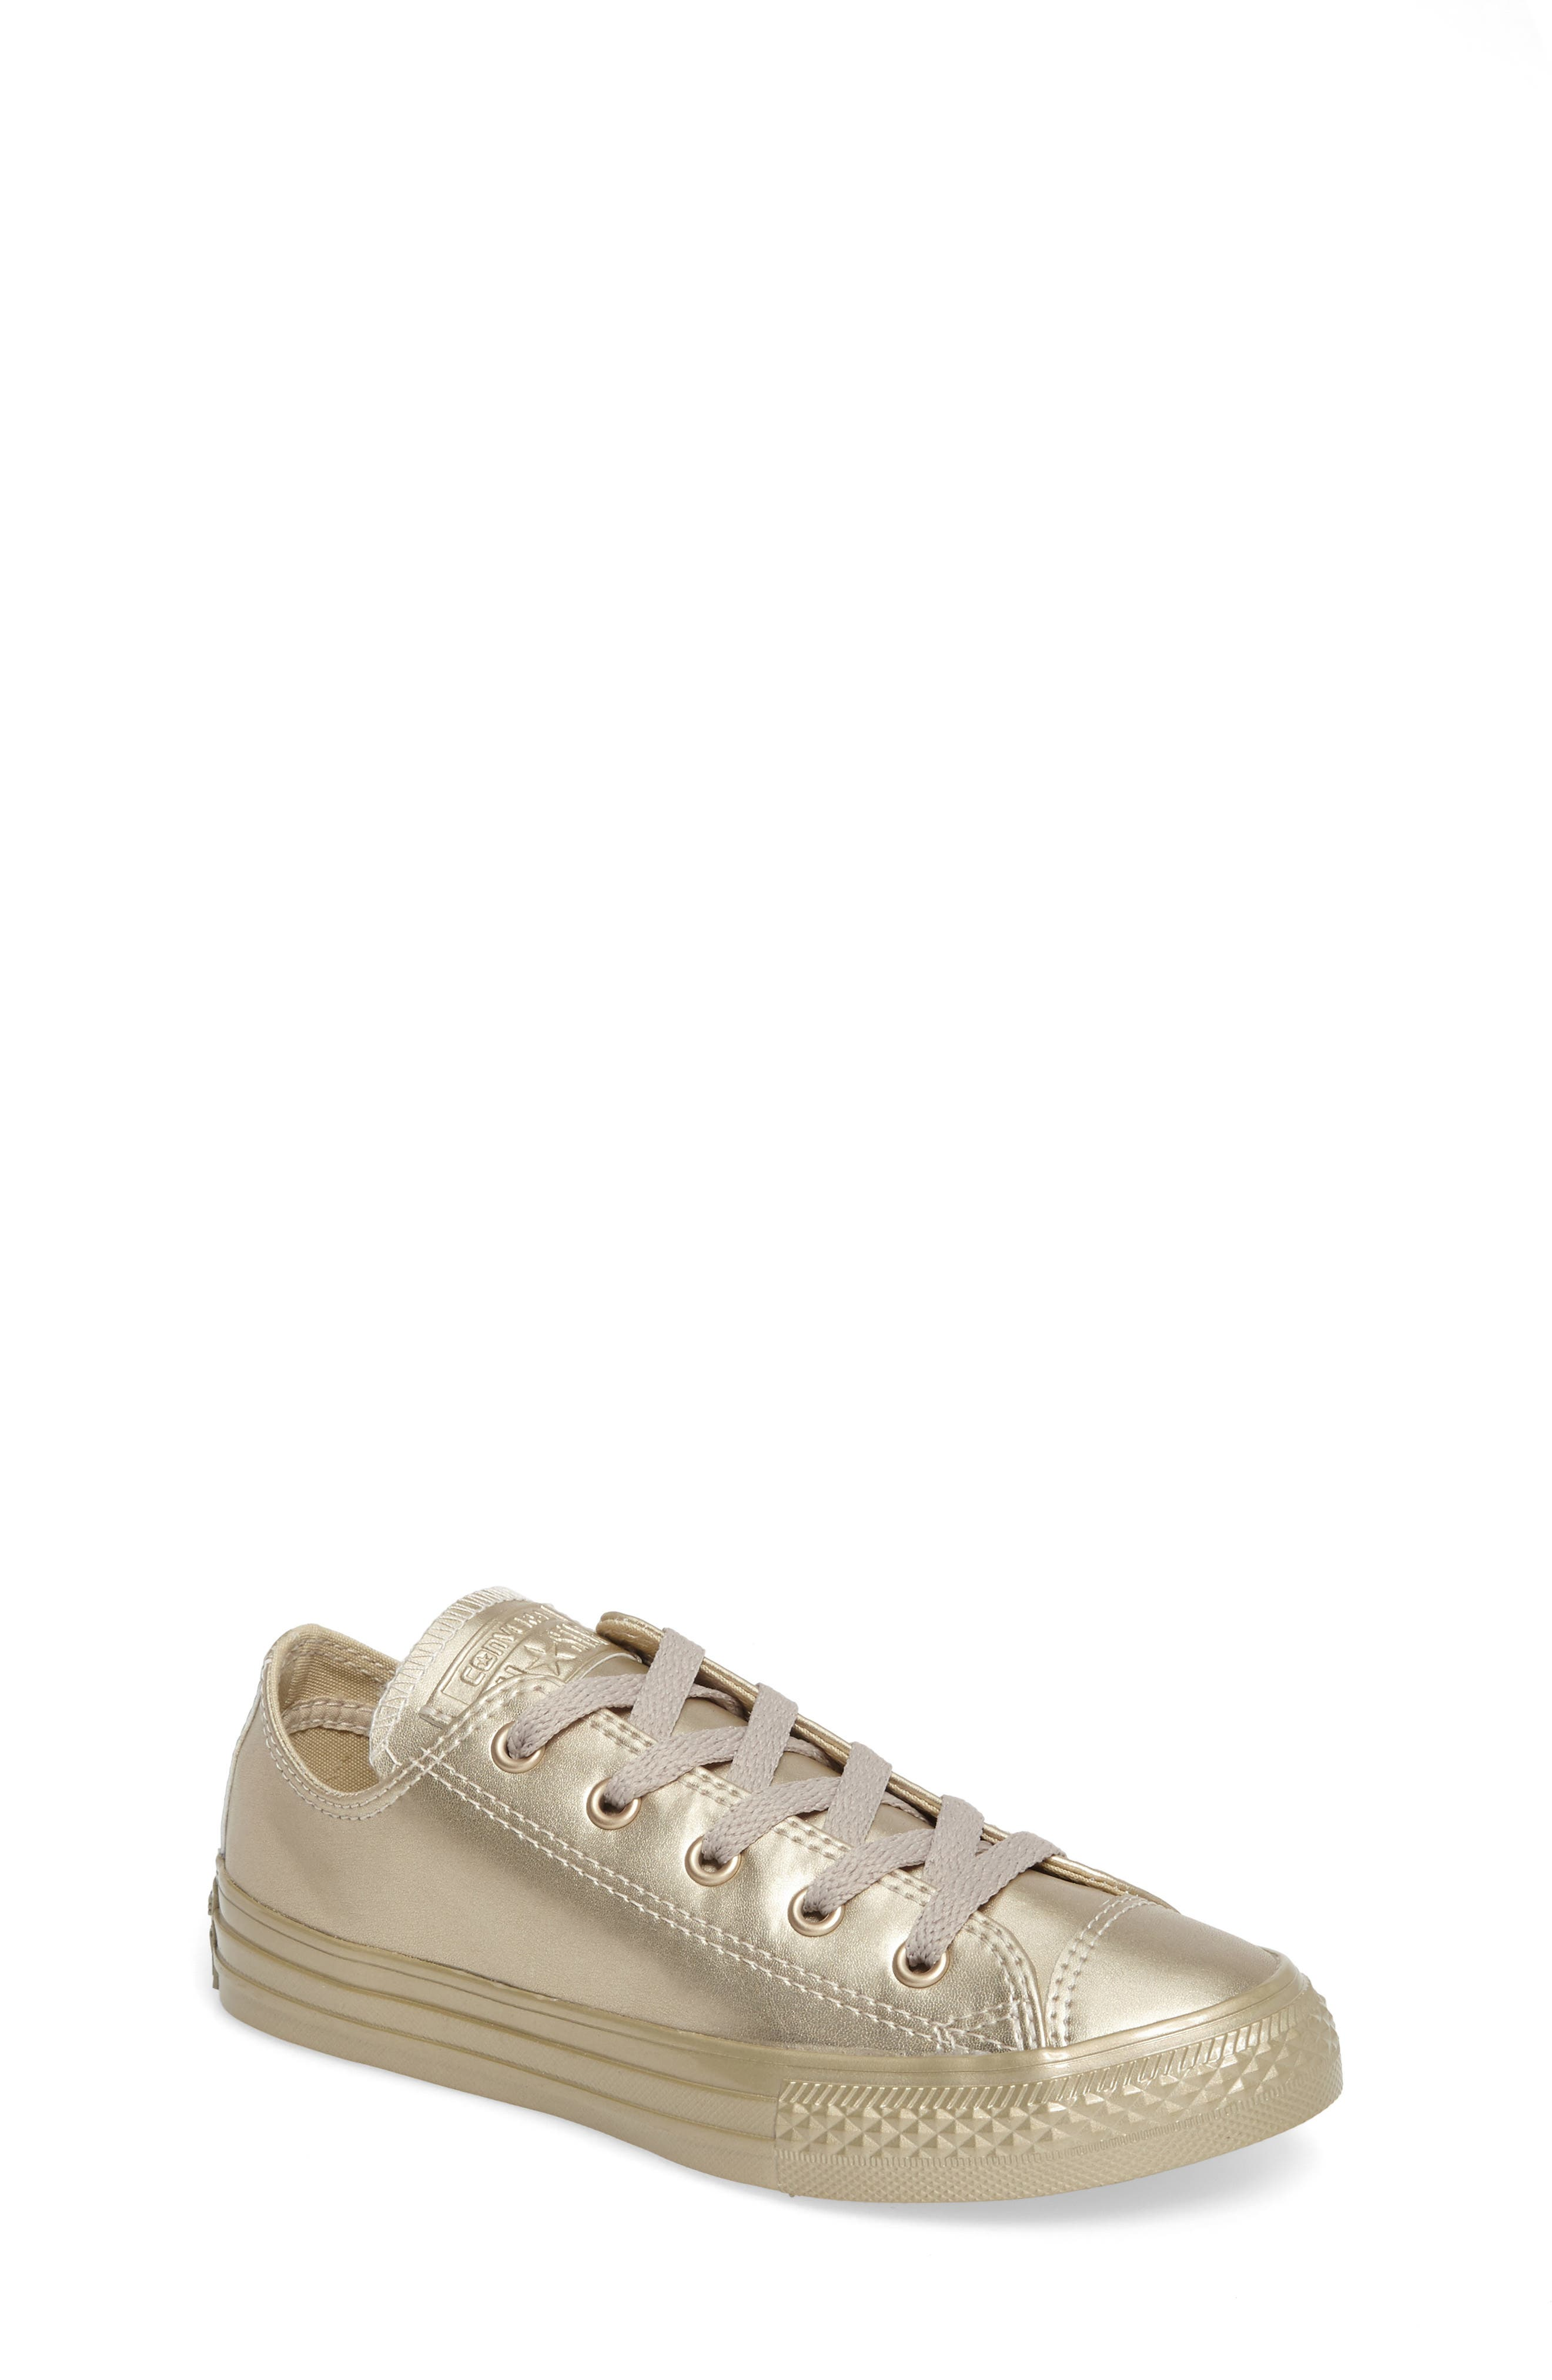 Chuck Taylor<sup>®</sup> All Star<sup>®</sup> Mono Metallic Low Top Sneaker,                         Main,                         color, 710